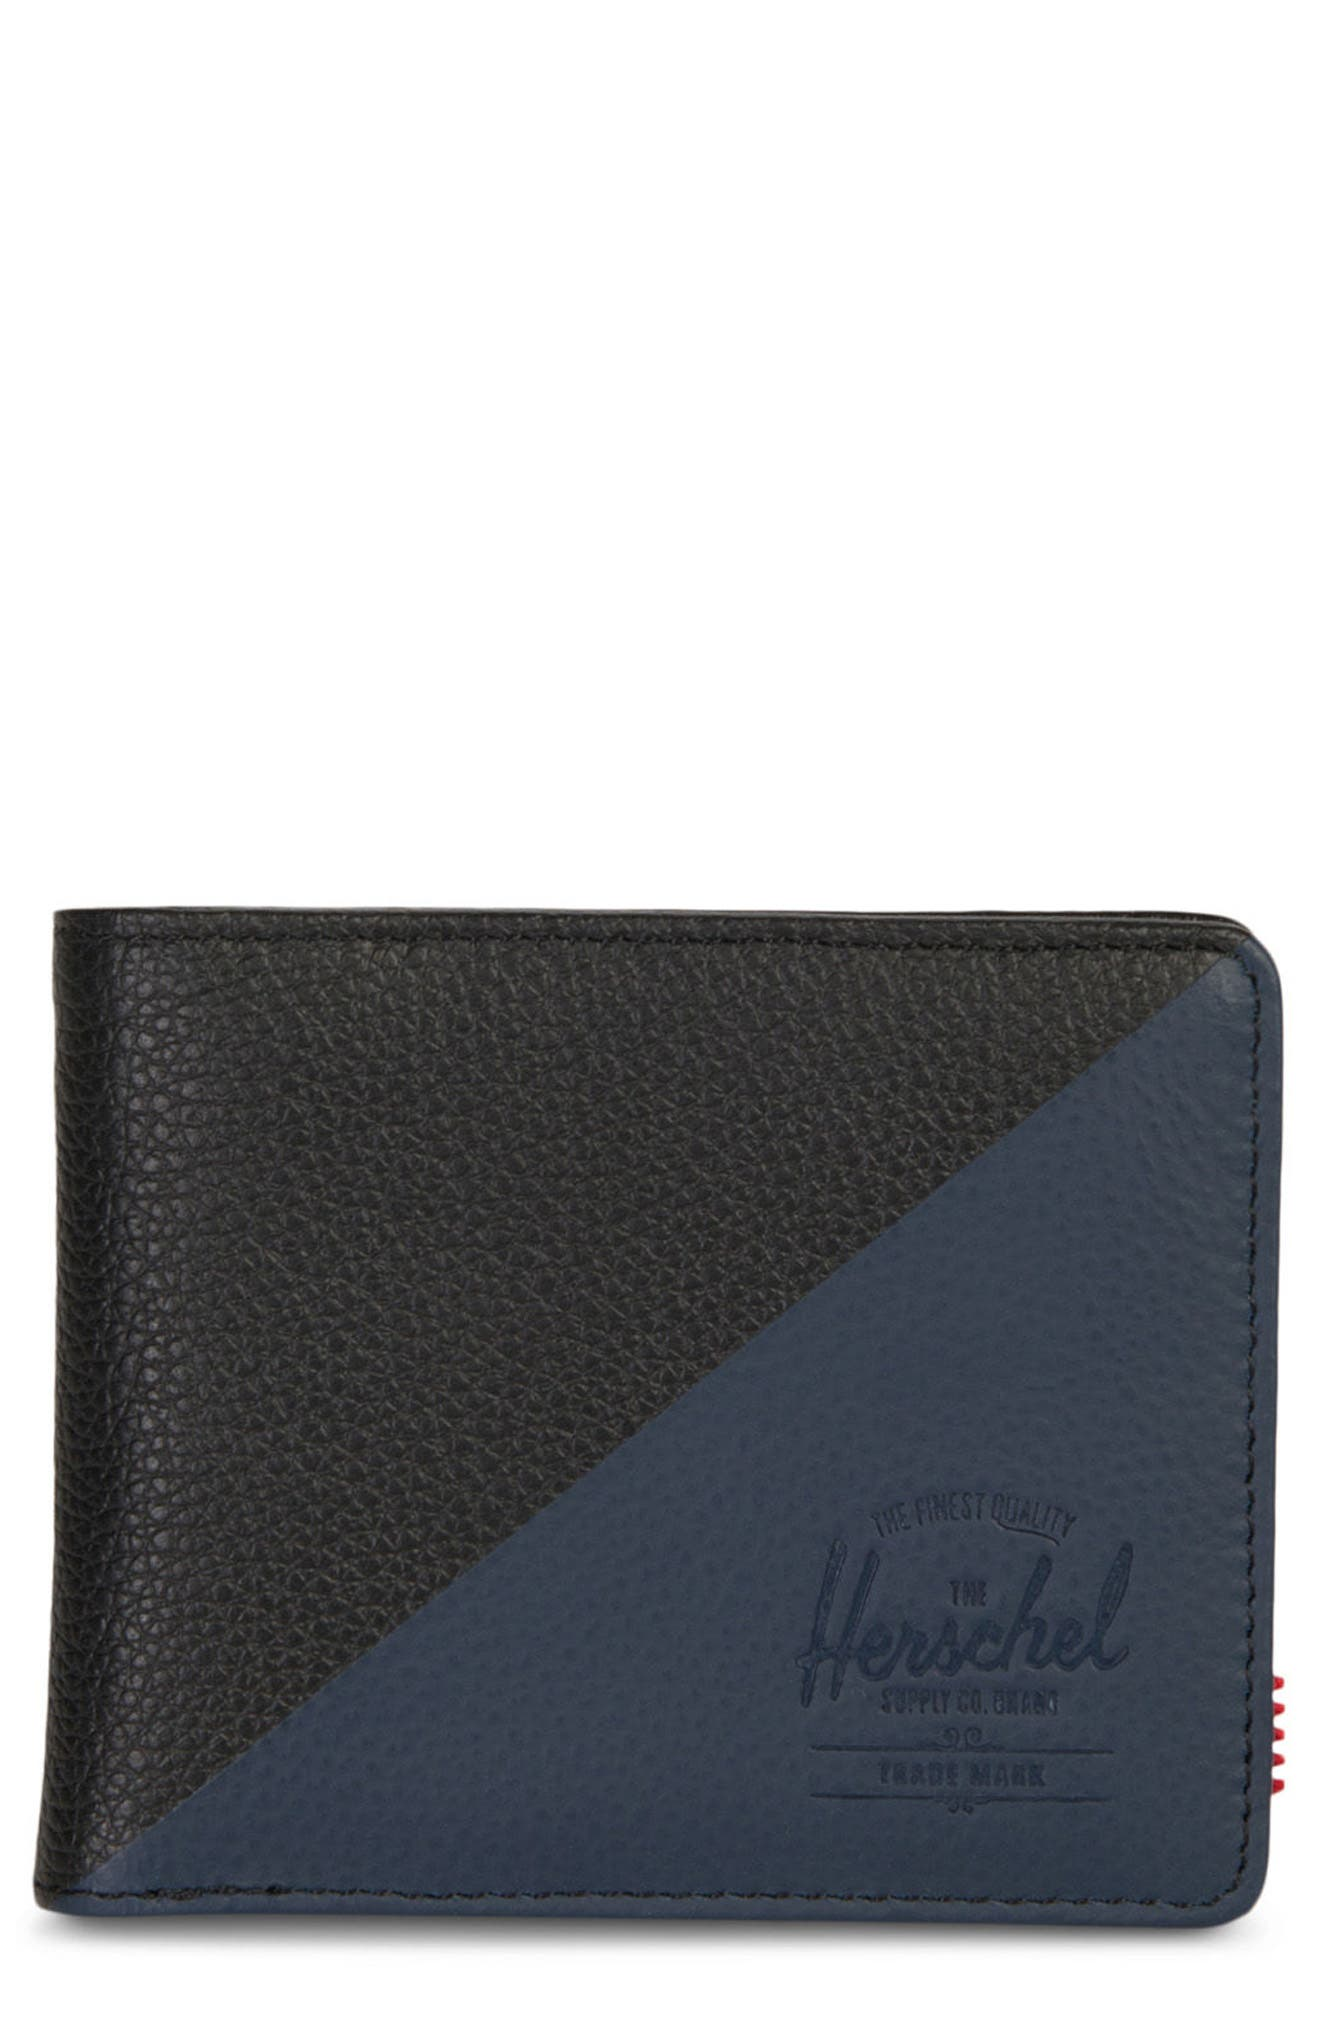 Hank Leather Wallet,                         Main,                         color, Black